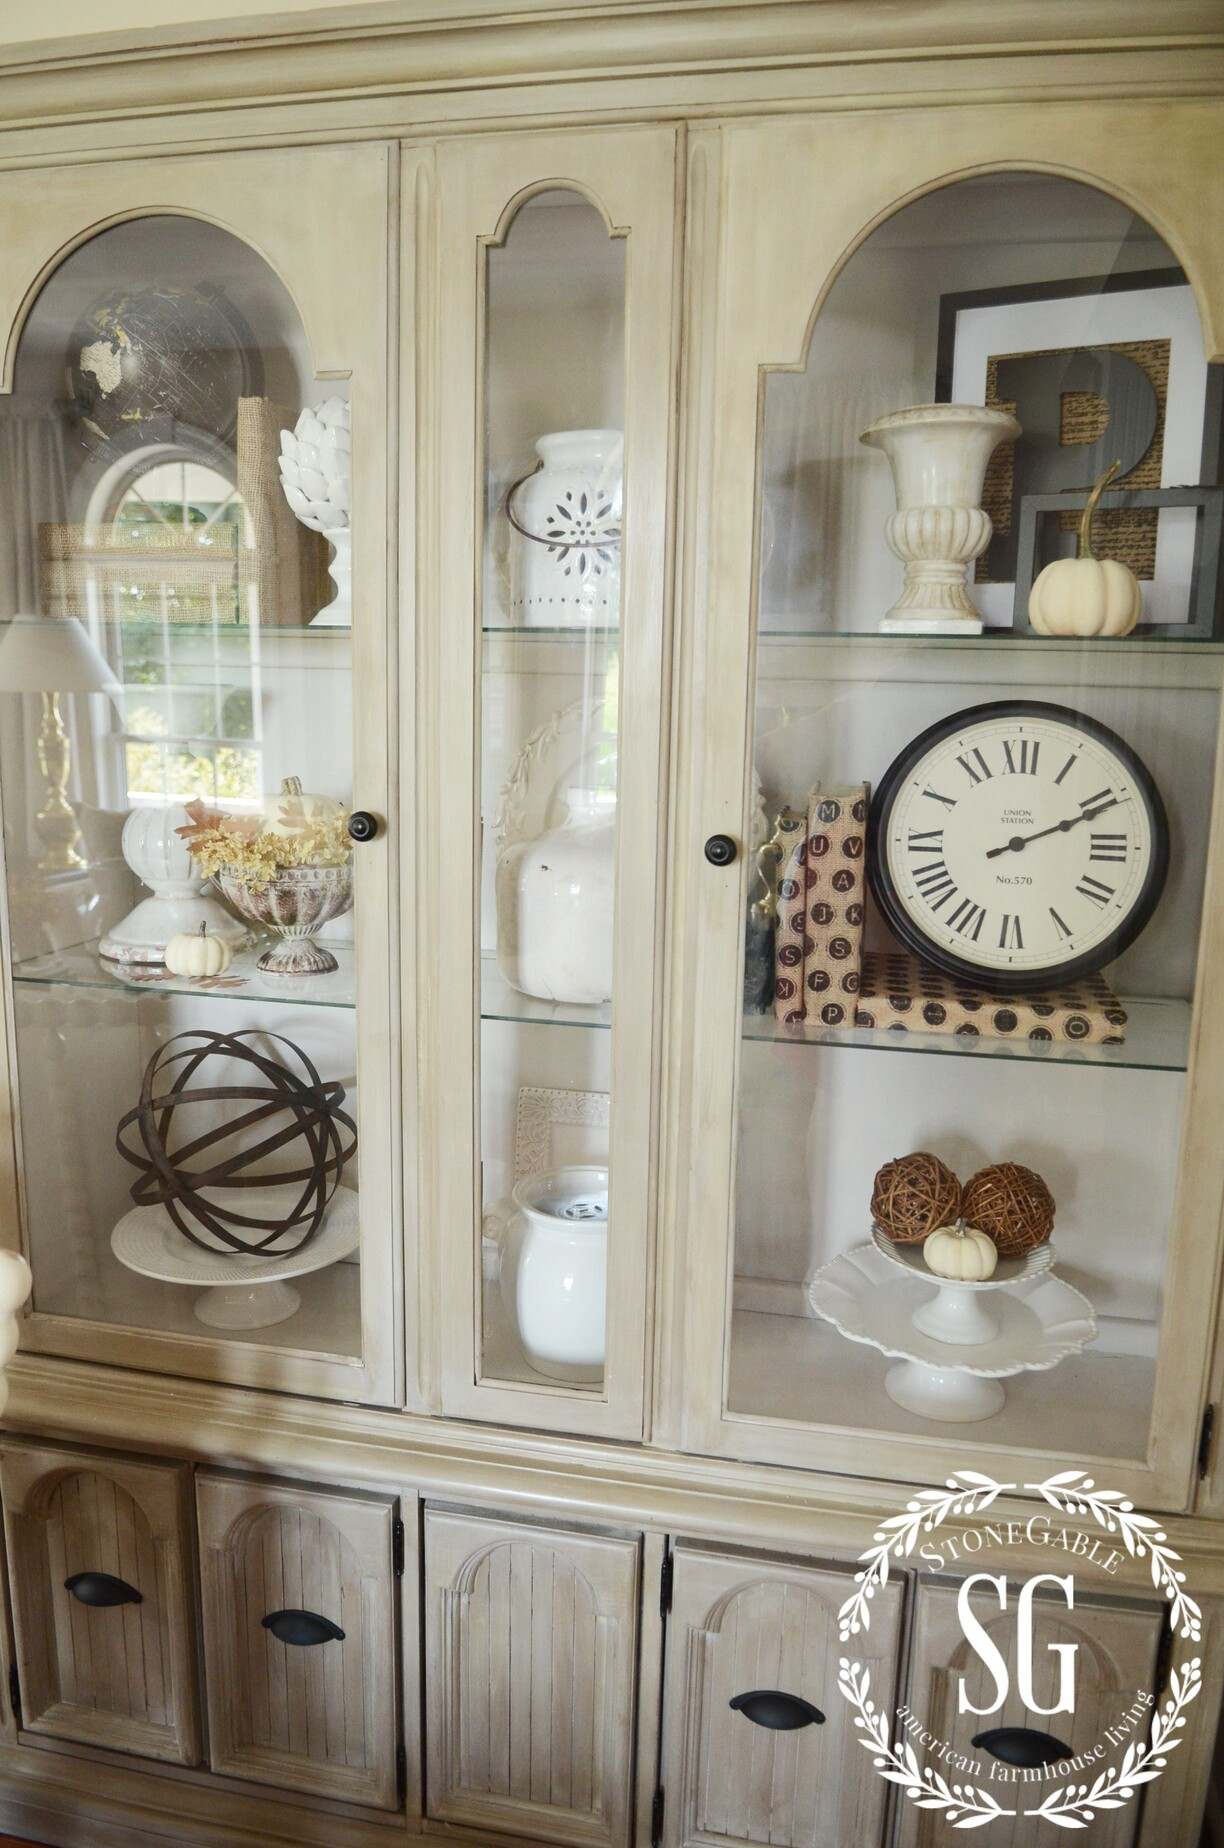 5 easy tips to style a hutch stonegable rh stonegableblog com